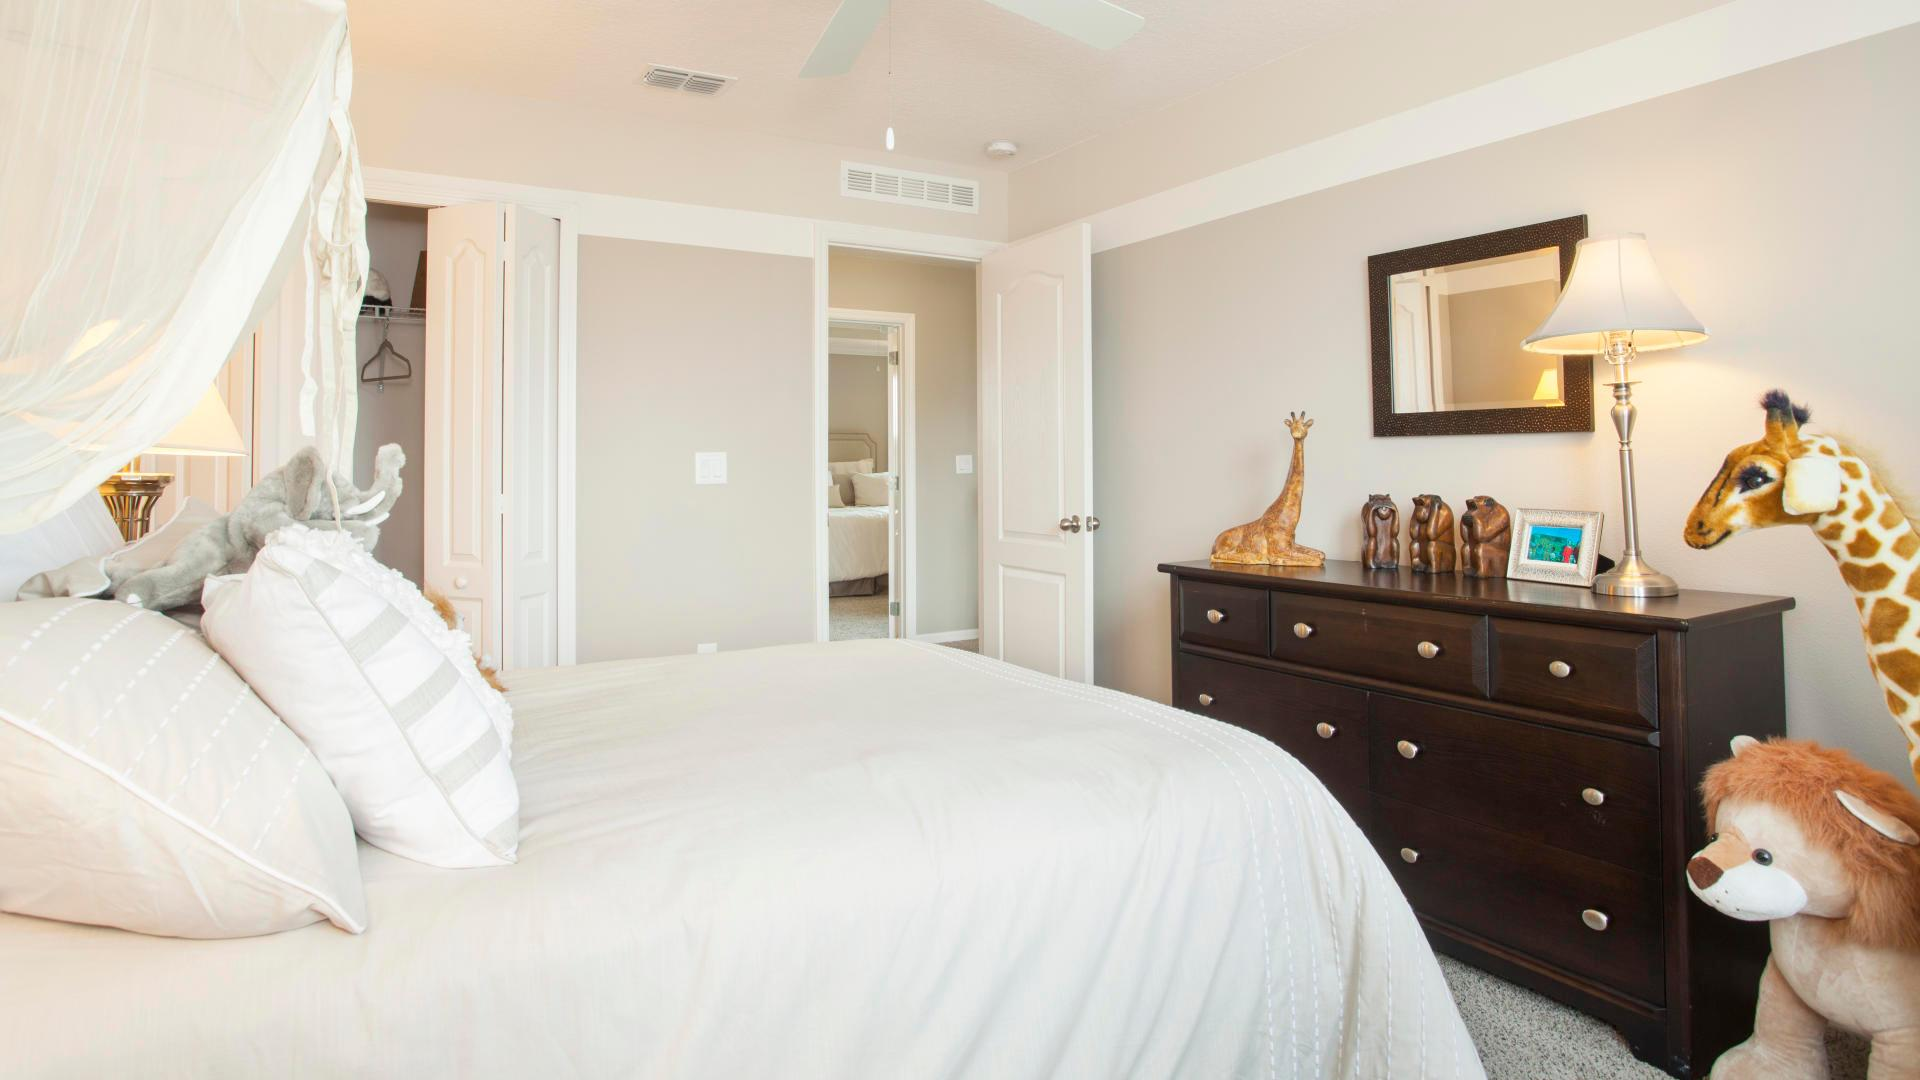 Bedroom featured in the Rockford By Maronda Homes in Jacksonville-St. Augustine, GA